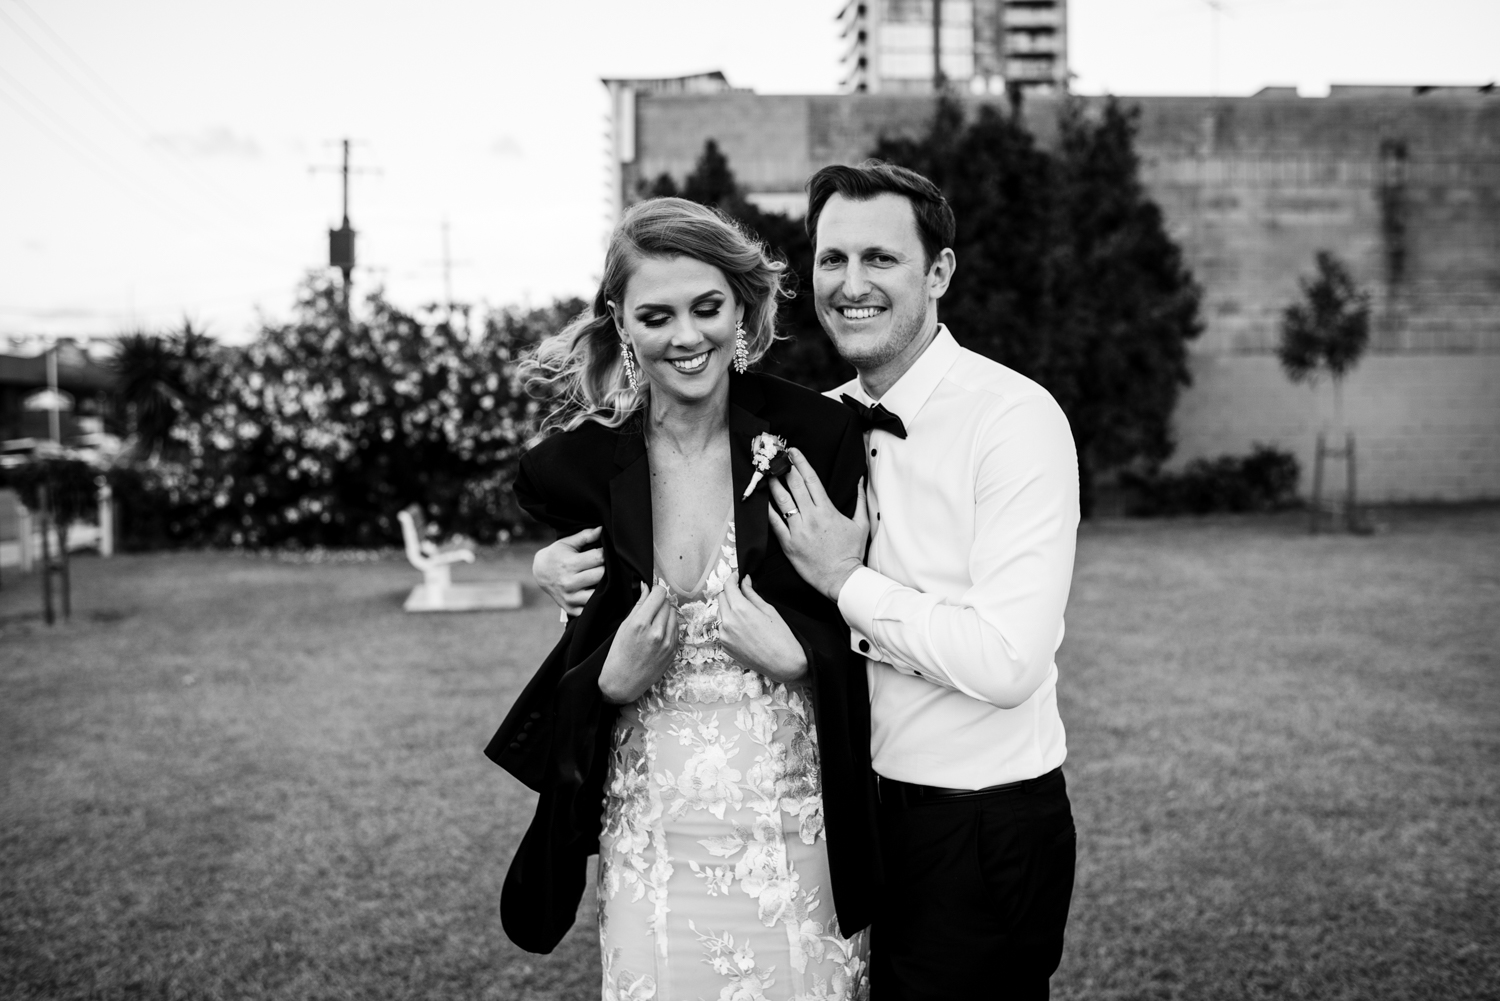 Brisbane Wedding Photographer | Engagement-Elopement Photography | Factory51-City Botantic Gardens Wedding-74.jpg